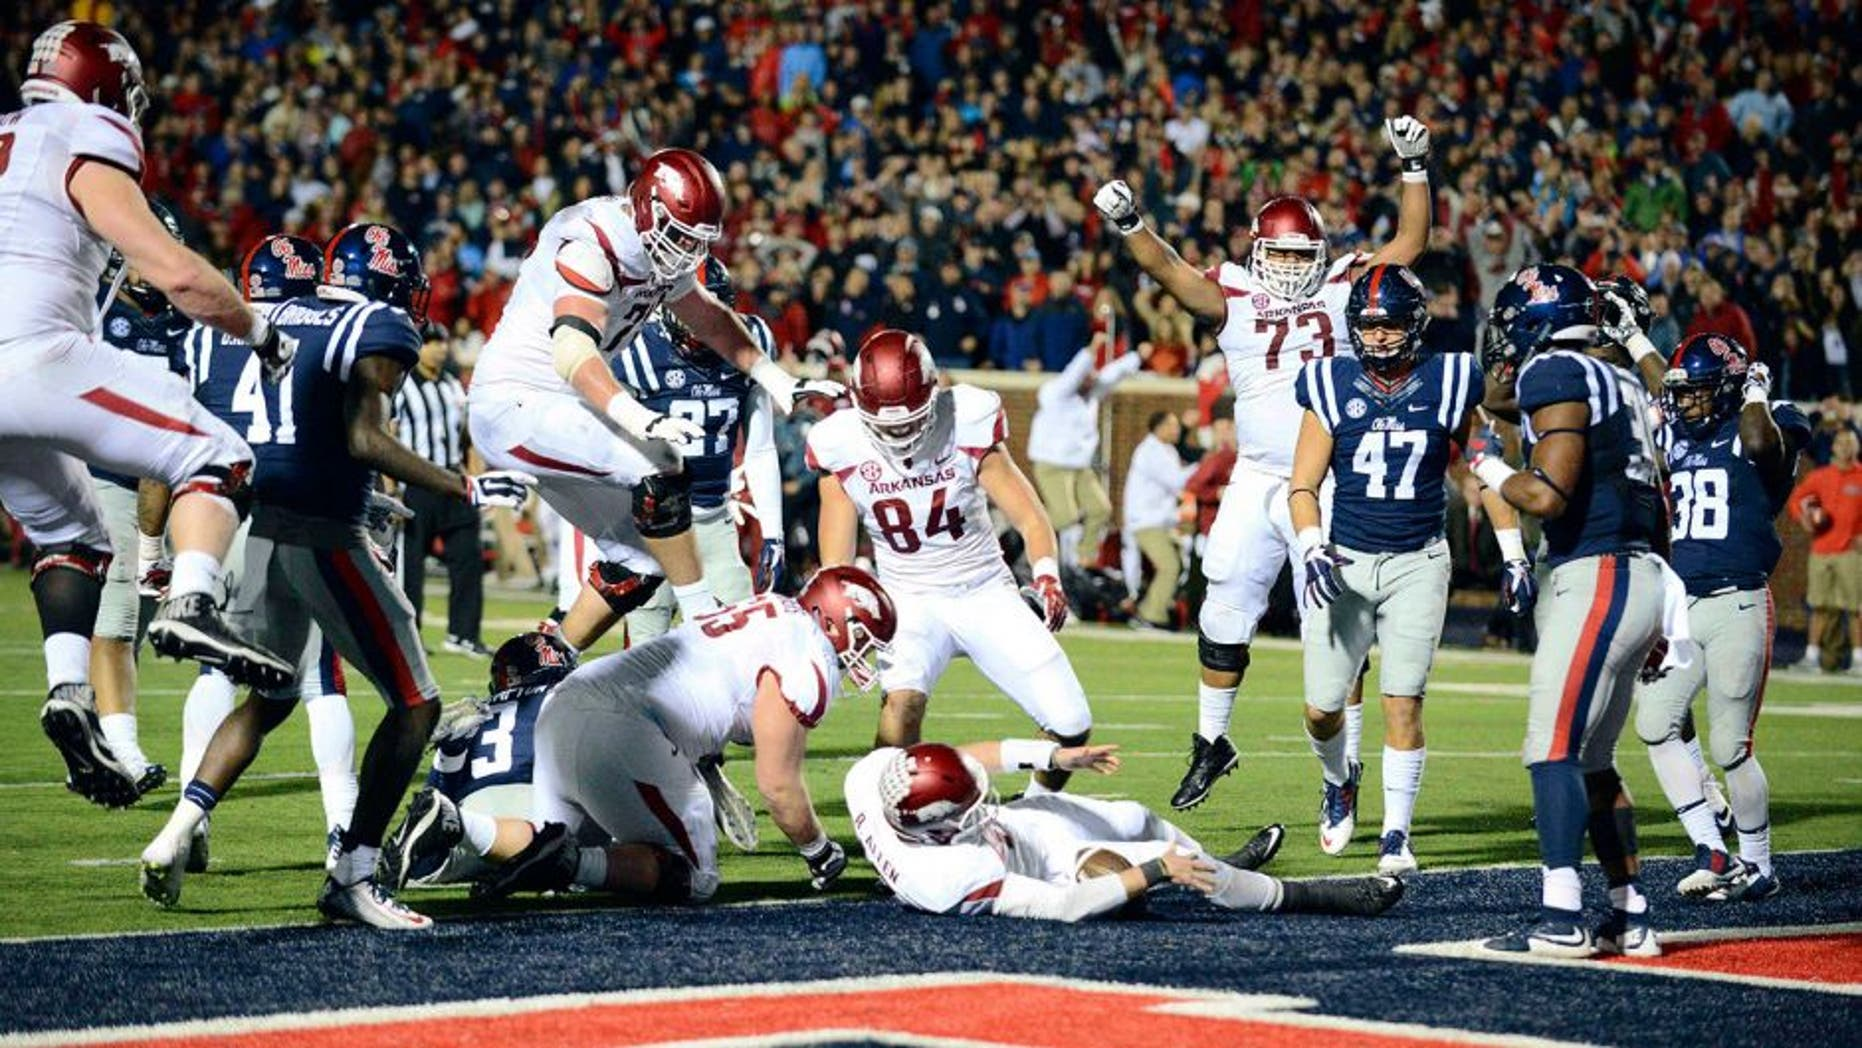 Nov 7, 2015; Oxford, MS, USA; Arkansas Razorbacks players celebrate after quarterback Brandon Allen (10) scored a two point conversion to win in over time in the game at Vaught-Hemingway Stadium. Arkansas won 53-52. Mandatory Credit: Matt Bush-USA TODAY Sports